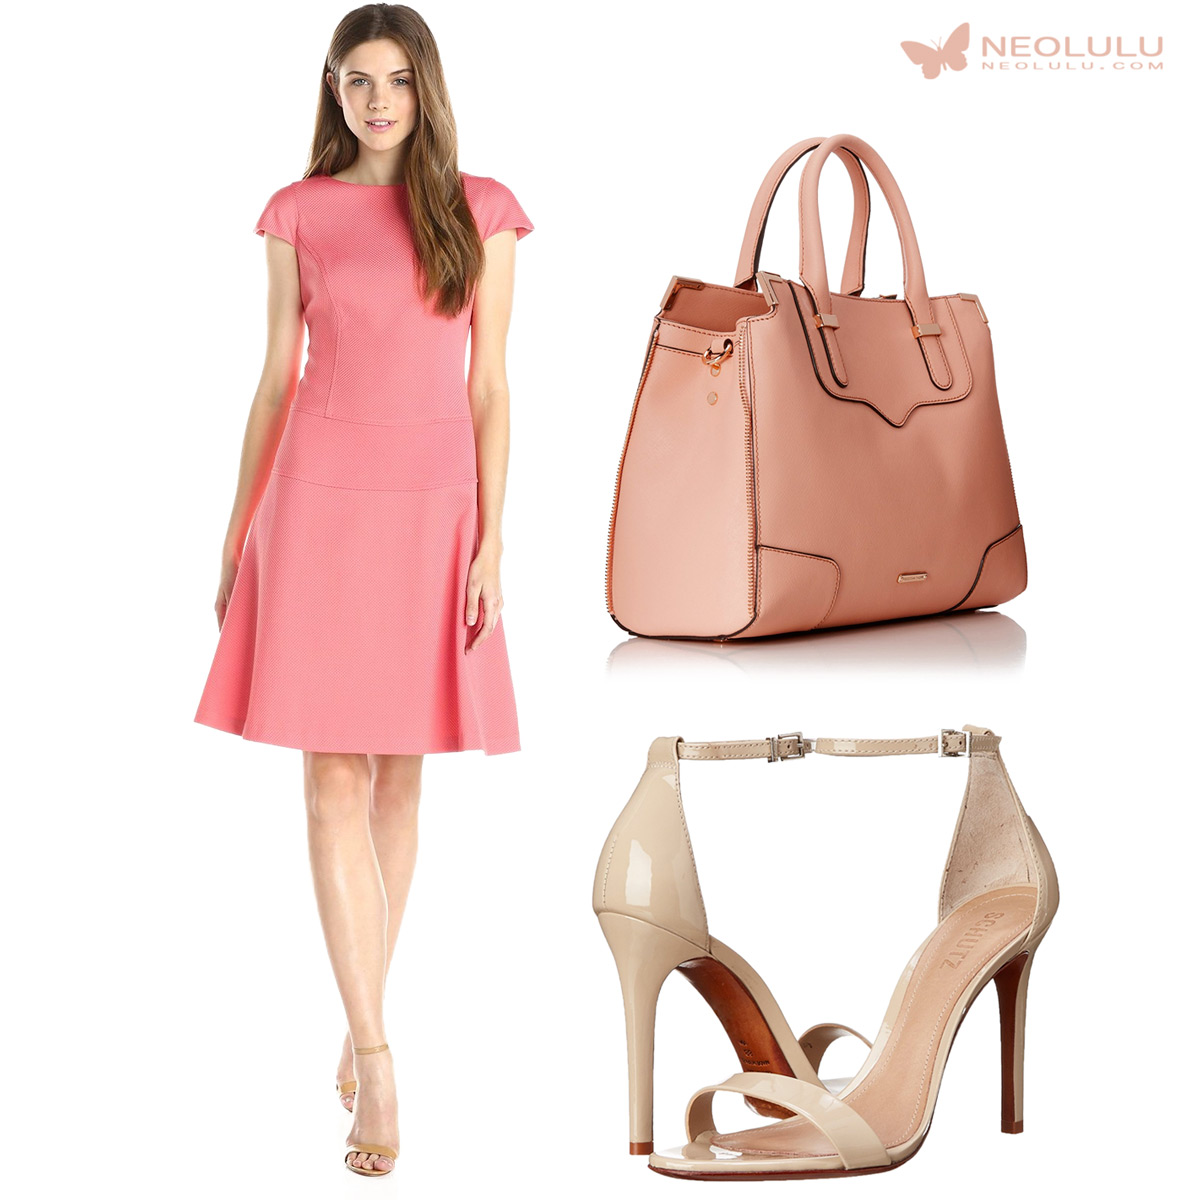 Summer Elegance: Fit-n-Flare Dress, Satchel and Sandals in Soft Neutrals